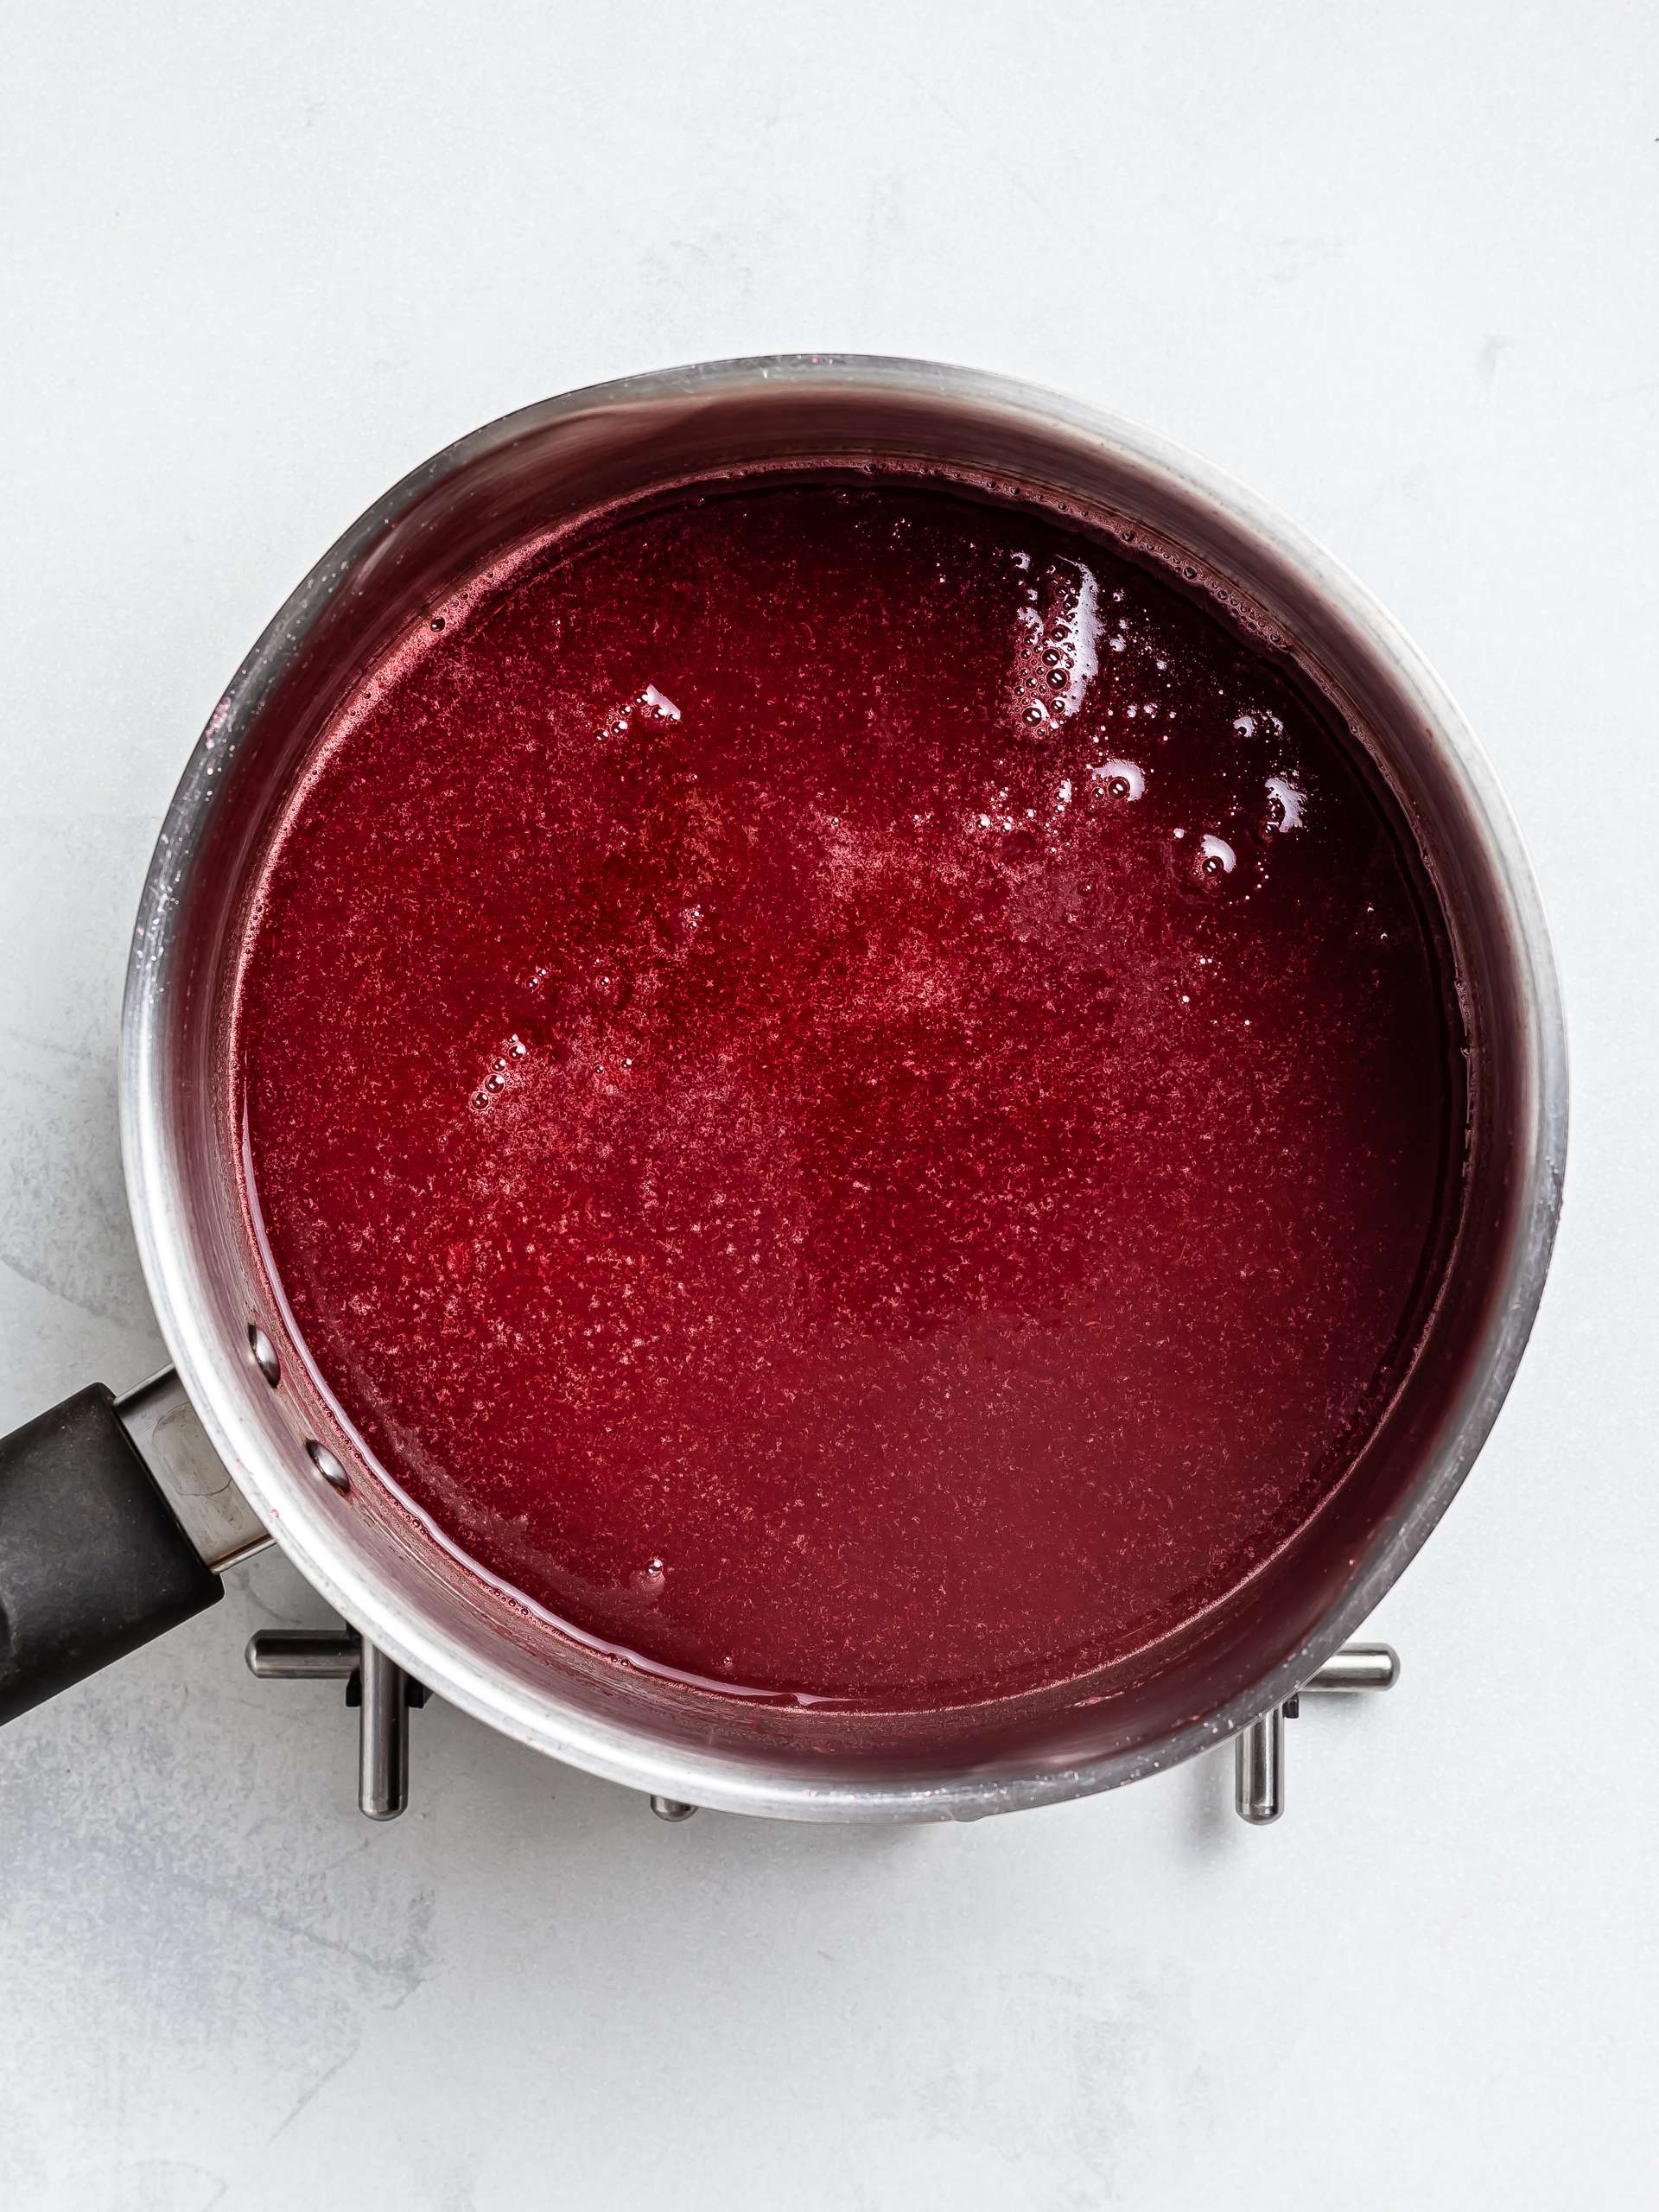 apple raspberry jam cooking in a pot